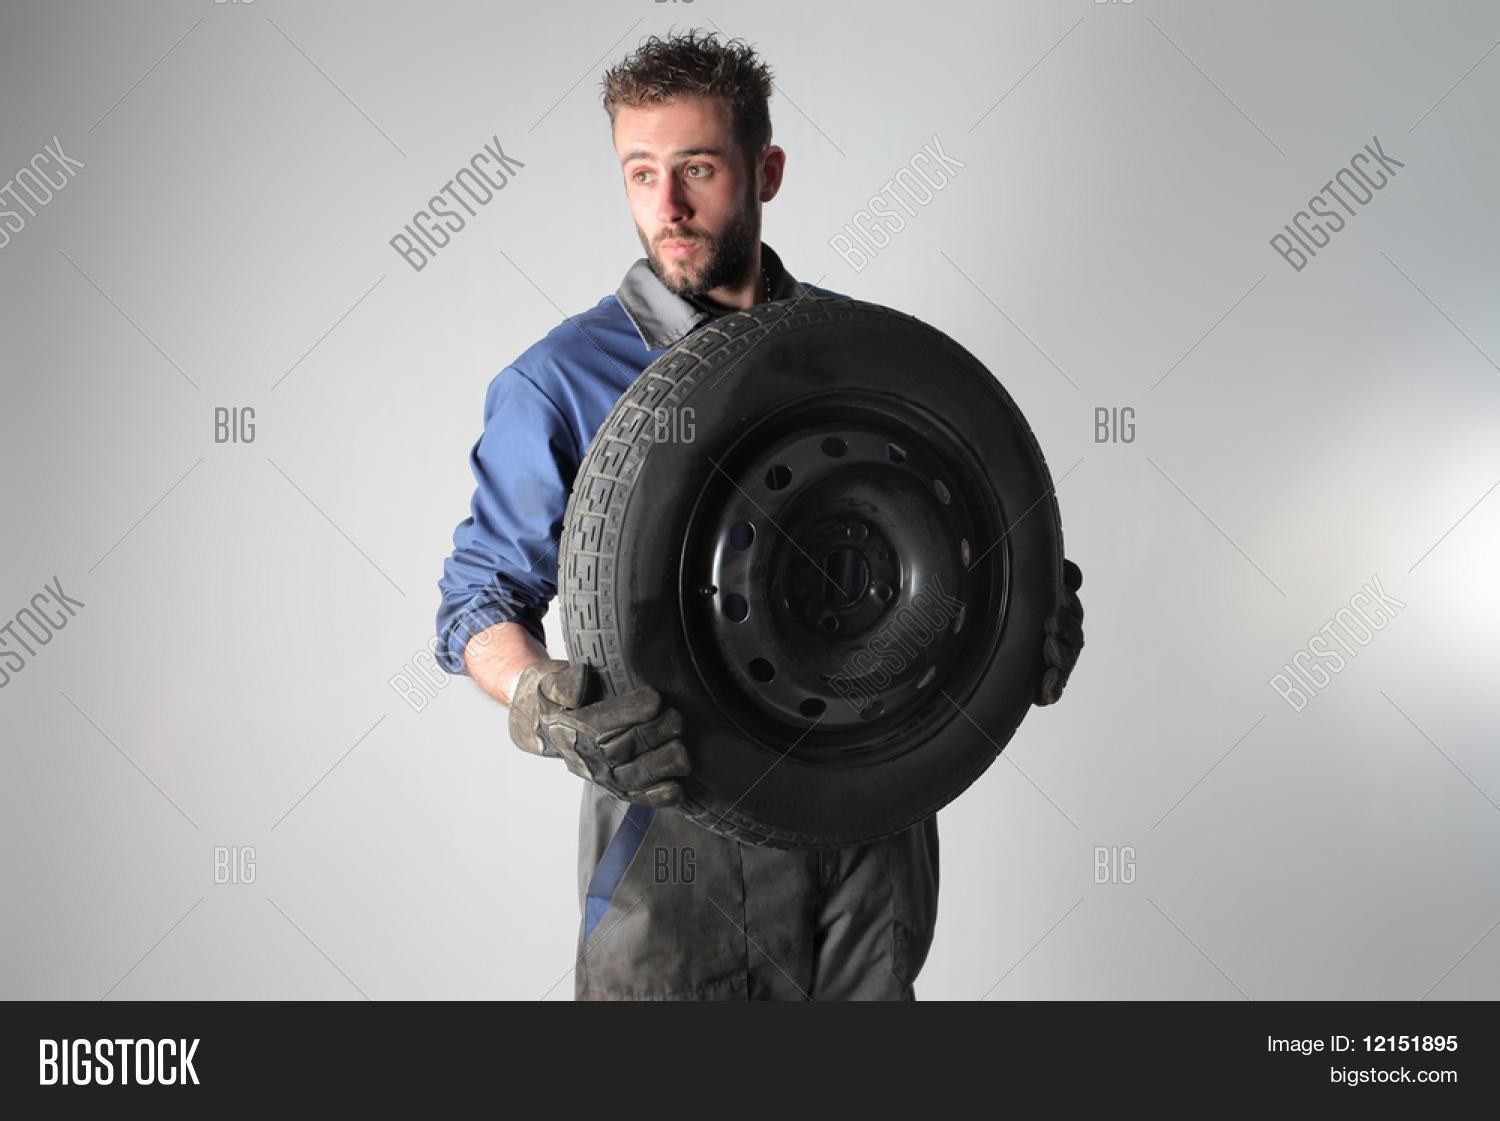 adjusting,auto,automotive,boy,car,change,check,device,dirty,engine,equipment,fix,fixing,garage,guy,help,instrument,isolated,maintain,maintenance,male,man,manual,mechanic,mechanical,new,occupation,old,part,portrait,professional,repair,restore,rim,road,service,spare,substitution,technician,tool,transmission,transportation,tread,tyre,vehicle,wheel,white,work,worker,workshop